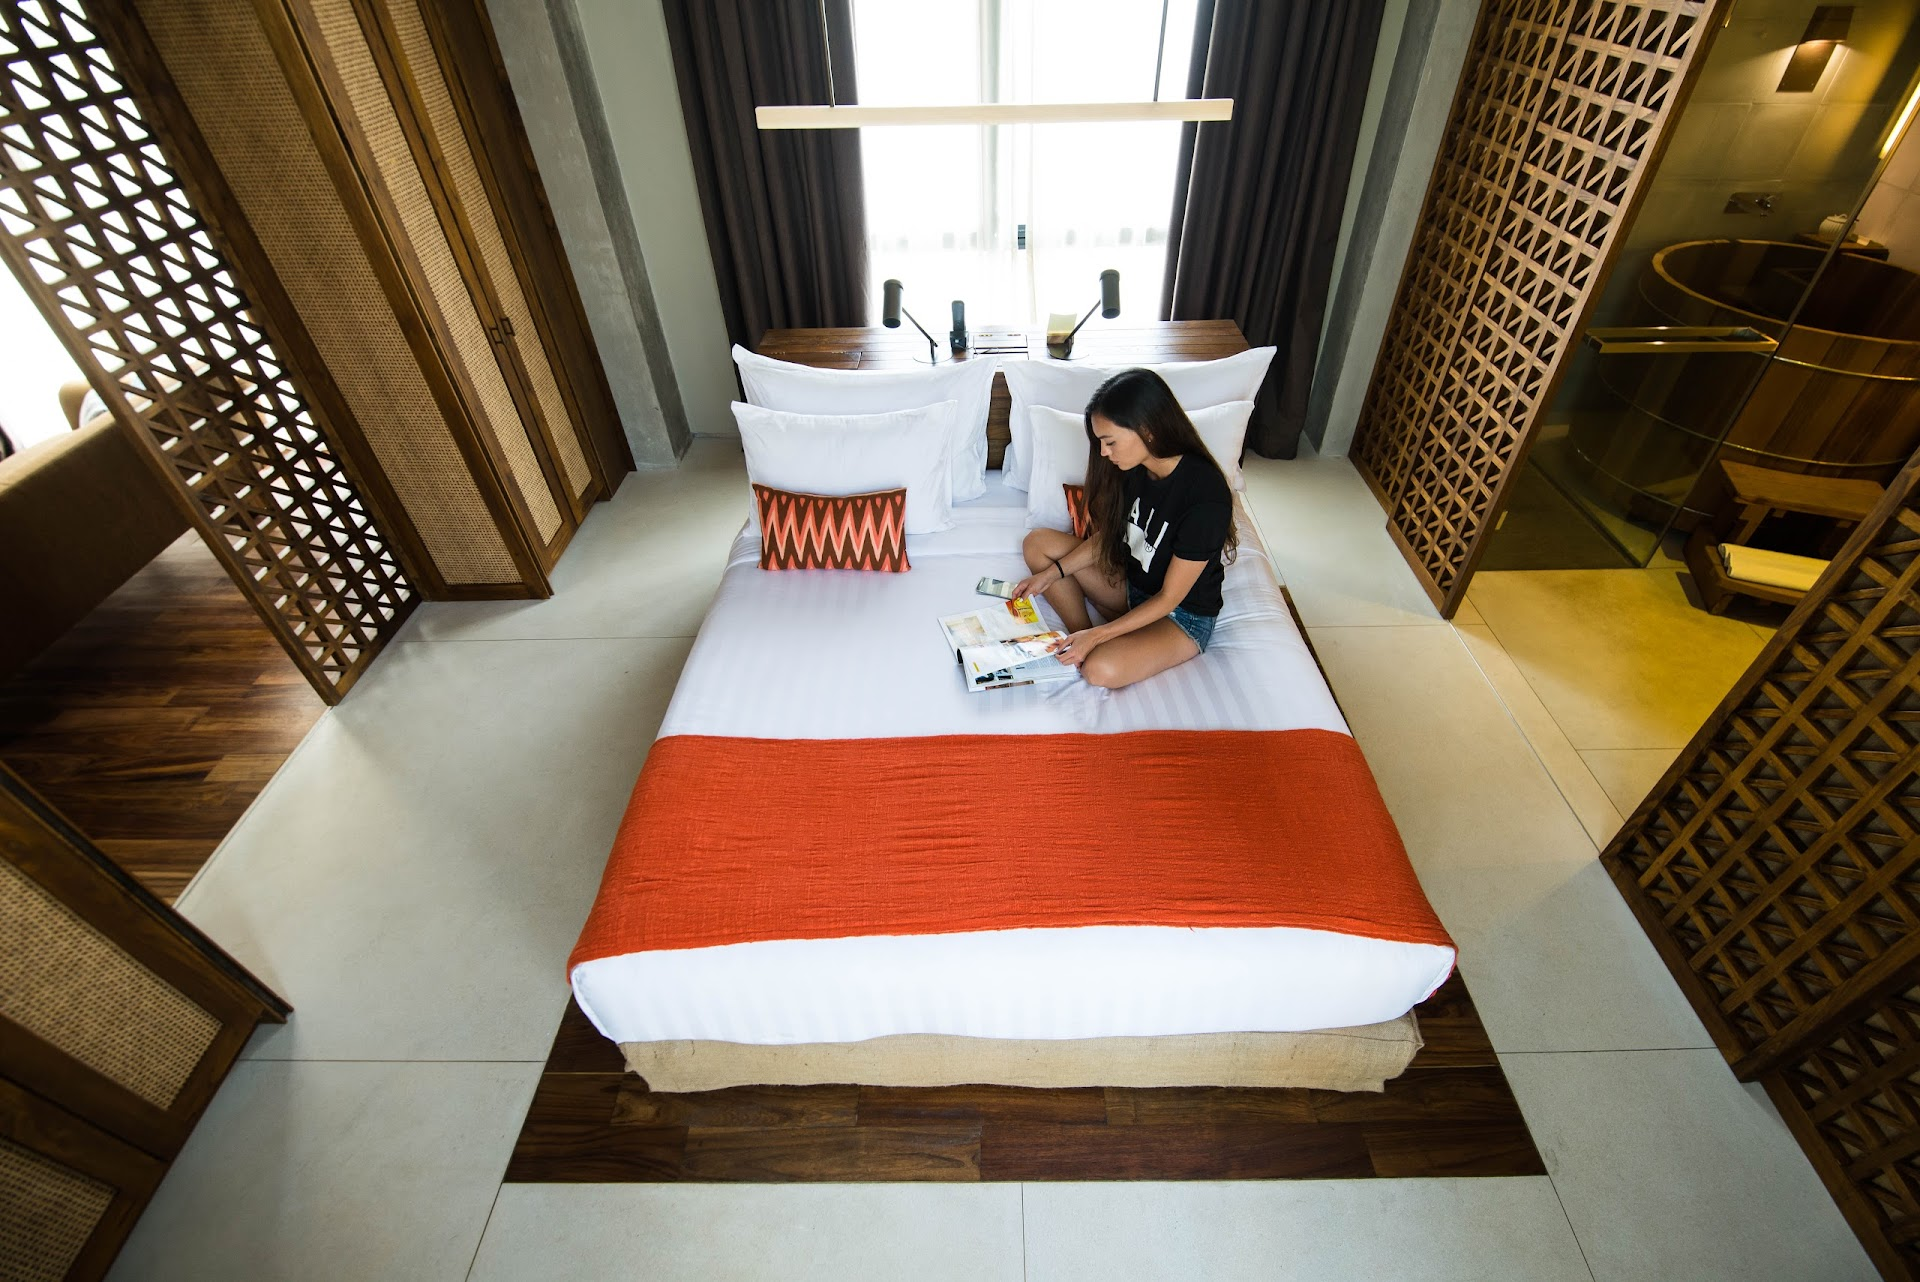 bali jungle, best hotels in bali, ubud, indonesia travel, bisma eight hotel review, tropical paradise, luxury hotel bali, travel blogger, california, san francisco bay area, korean asian travel blogger, japanese, mormon lds